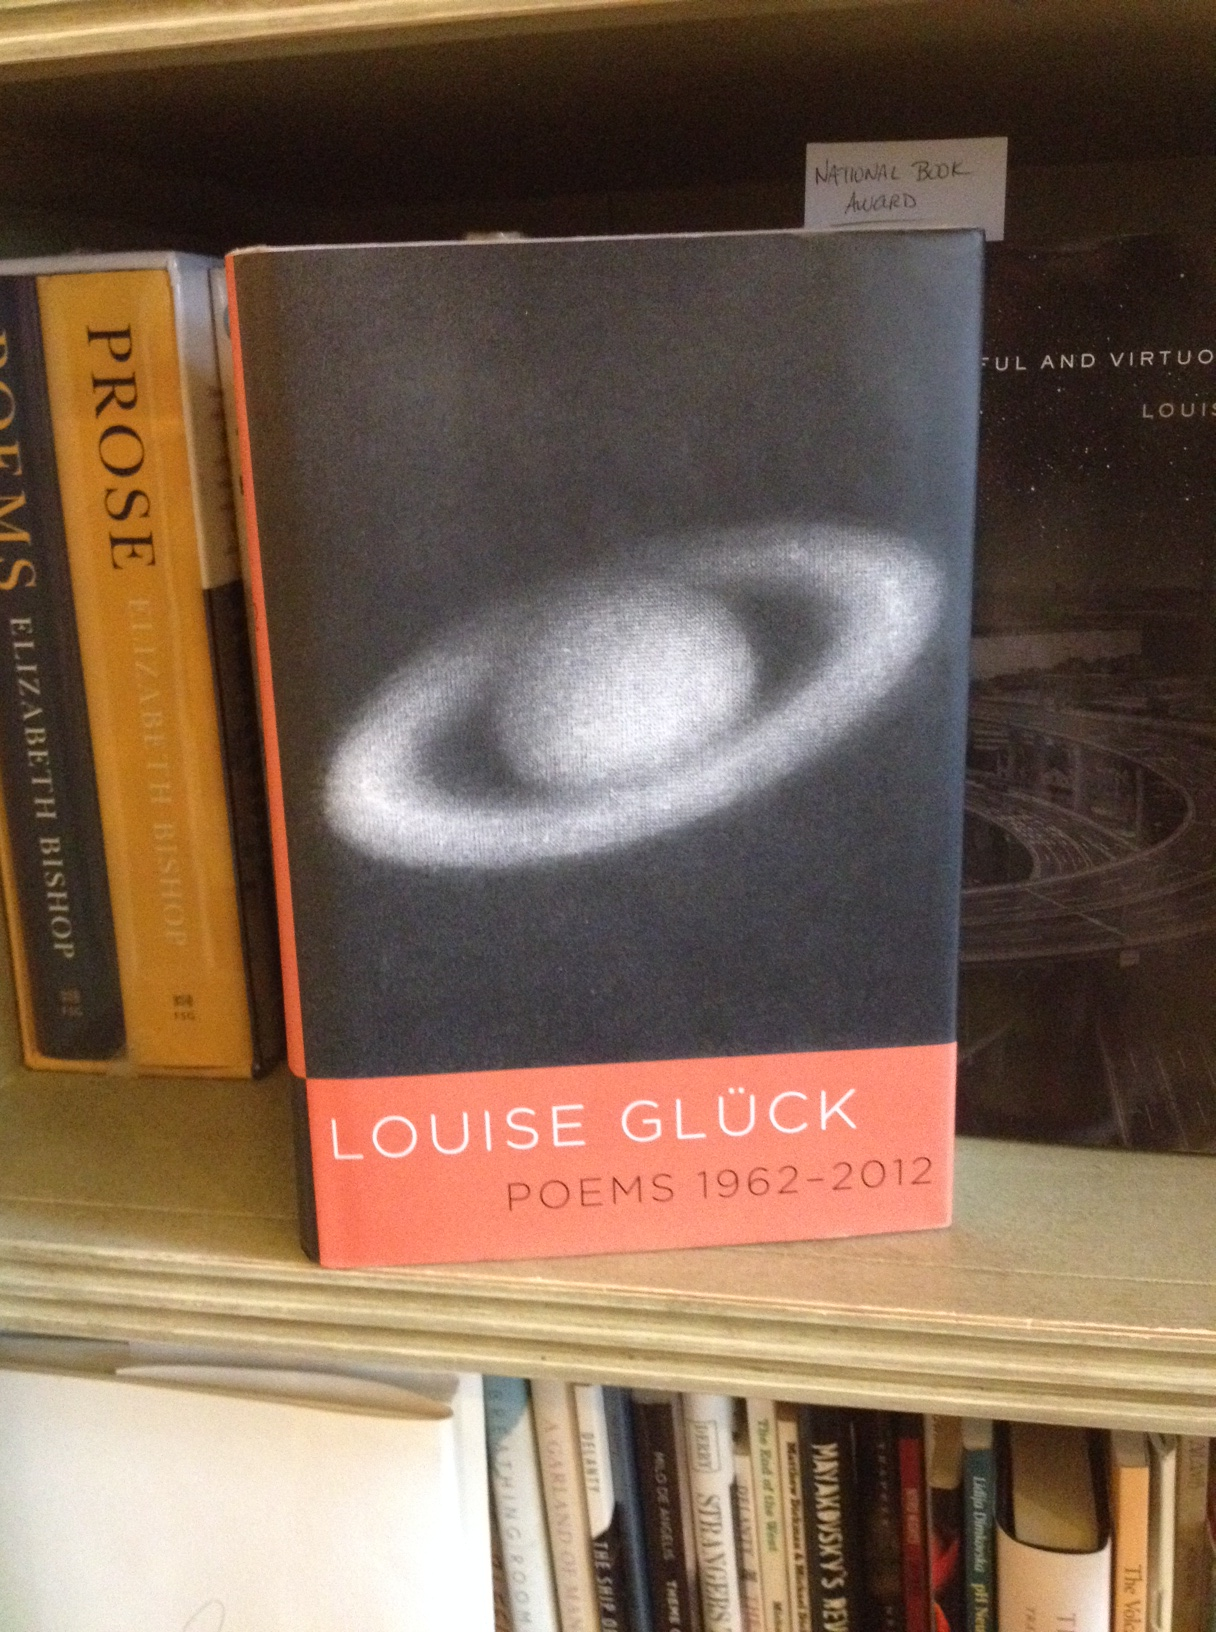 Louise Gluck S Collected Poems Faulkner House Books